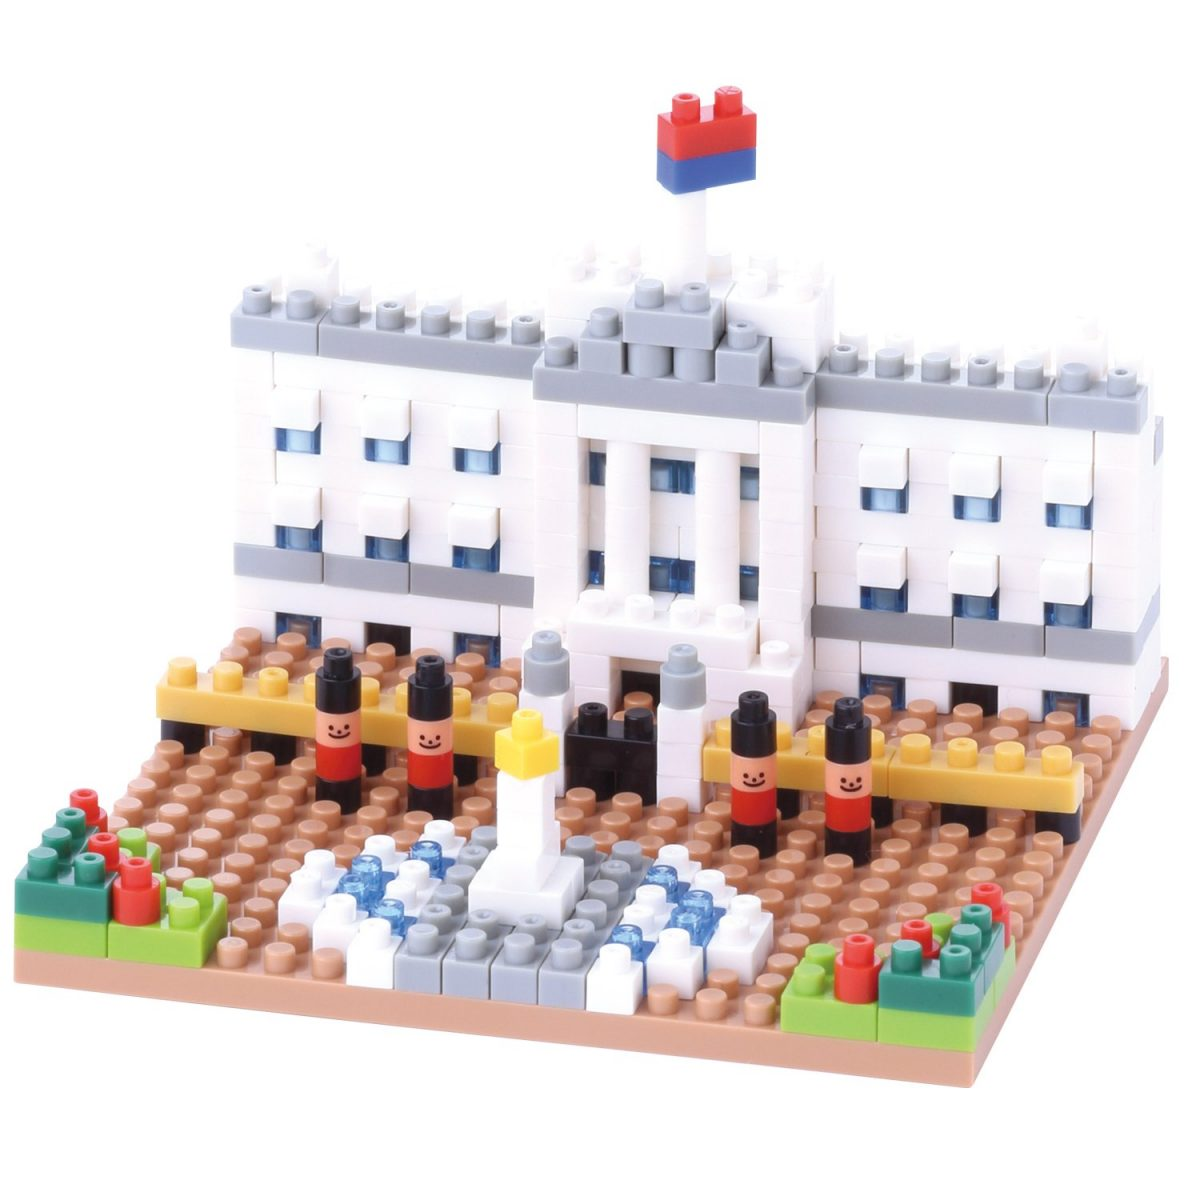 Nanoblock, Sight to See, Architecture, Buckingham Palace